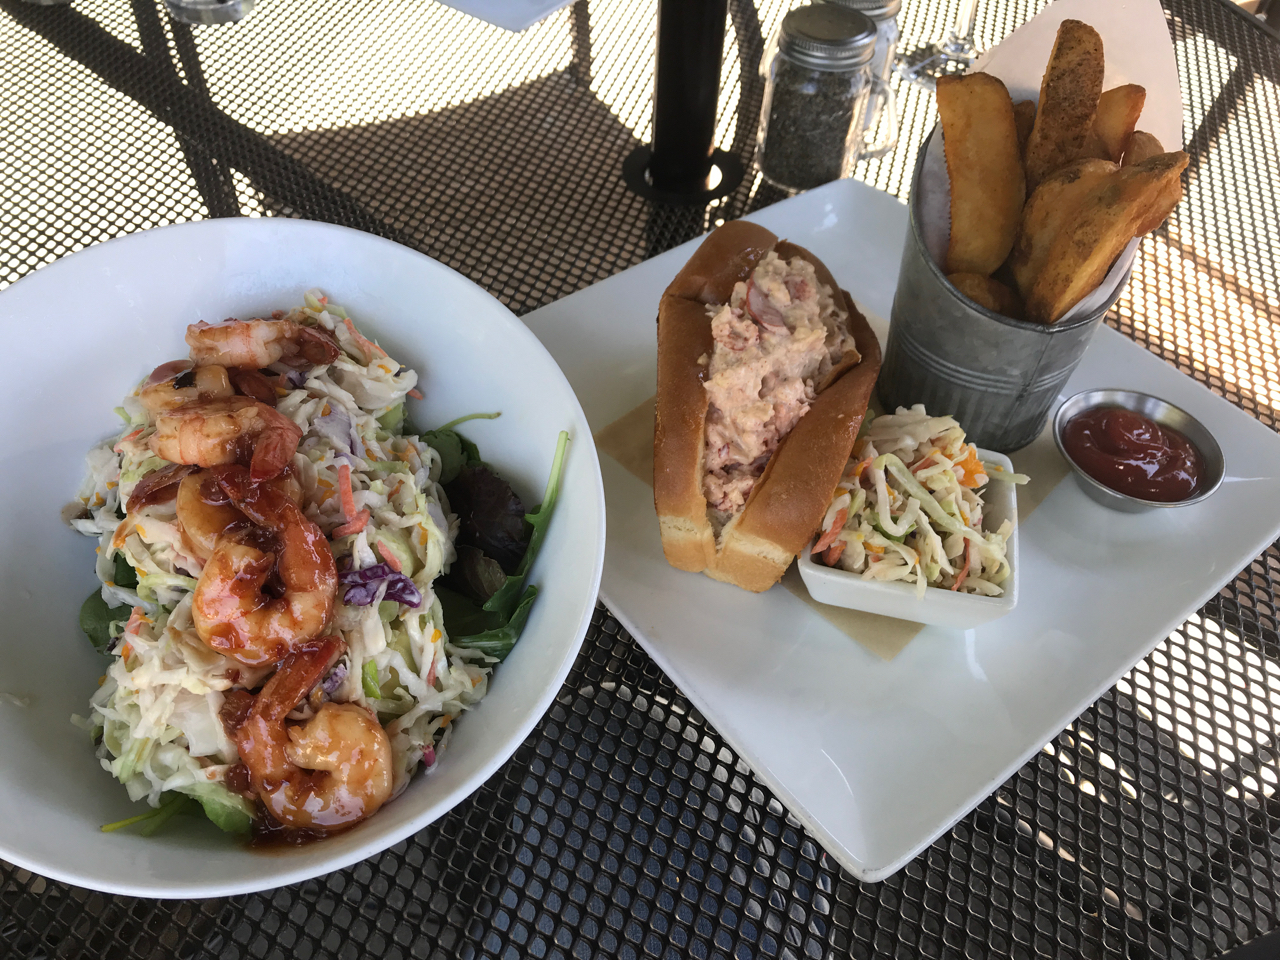 A Sautéed Prawn and Avocado Salad and a Traditional Lobster Roll at Rustic House Oyster Bar & Grill in Los Altos, California - Photo Courtesy of FoodWaterShoes